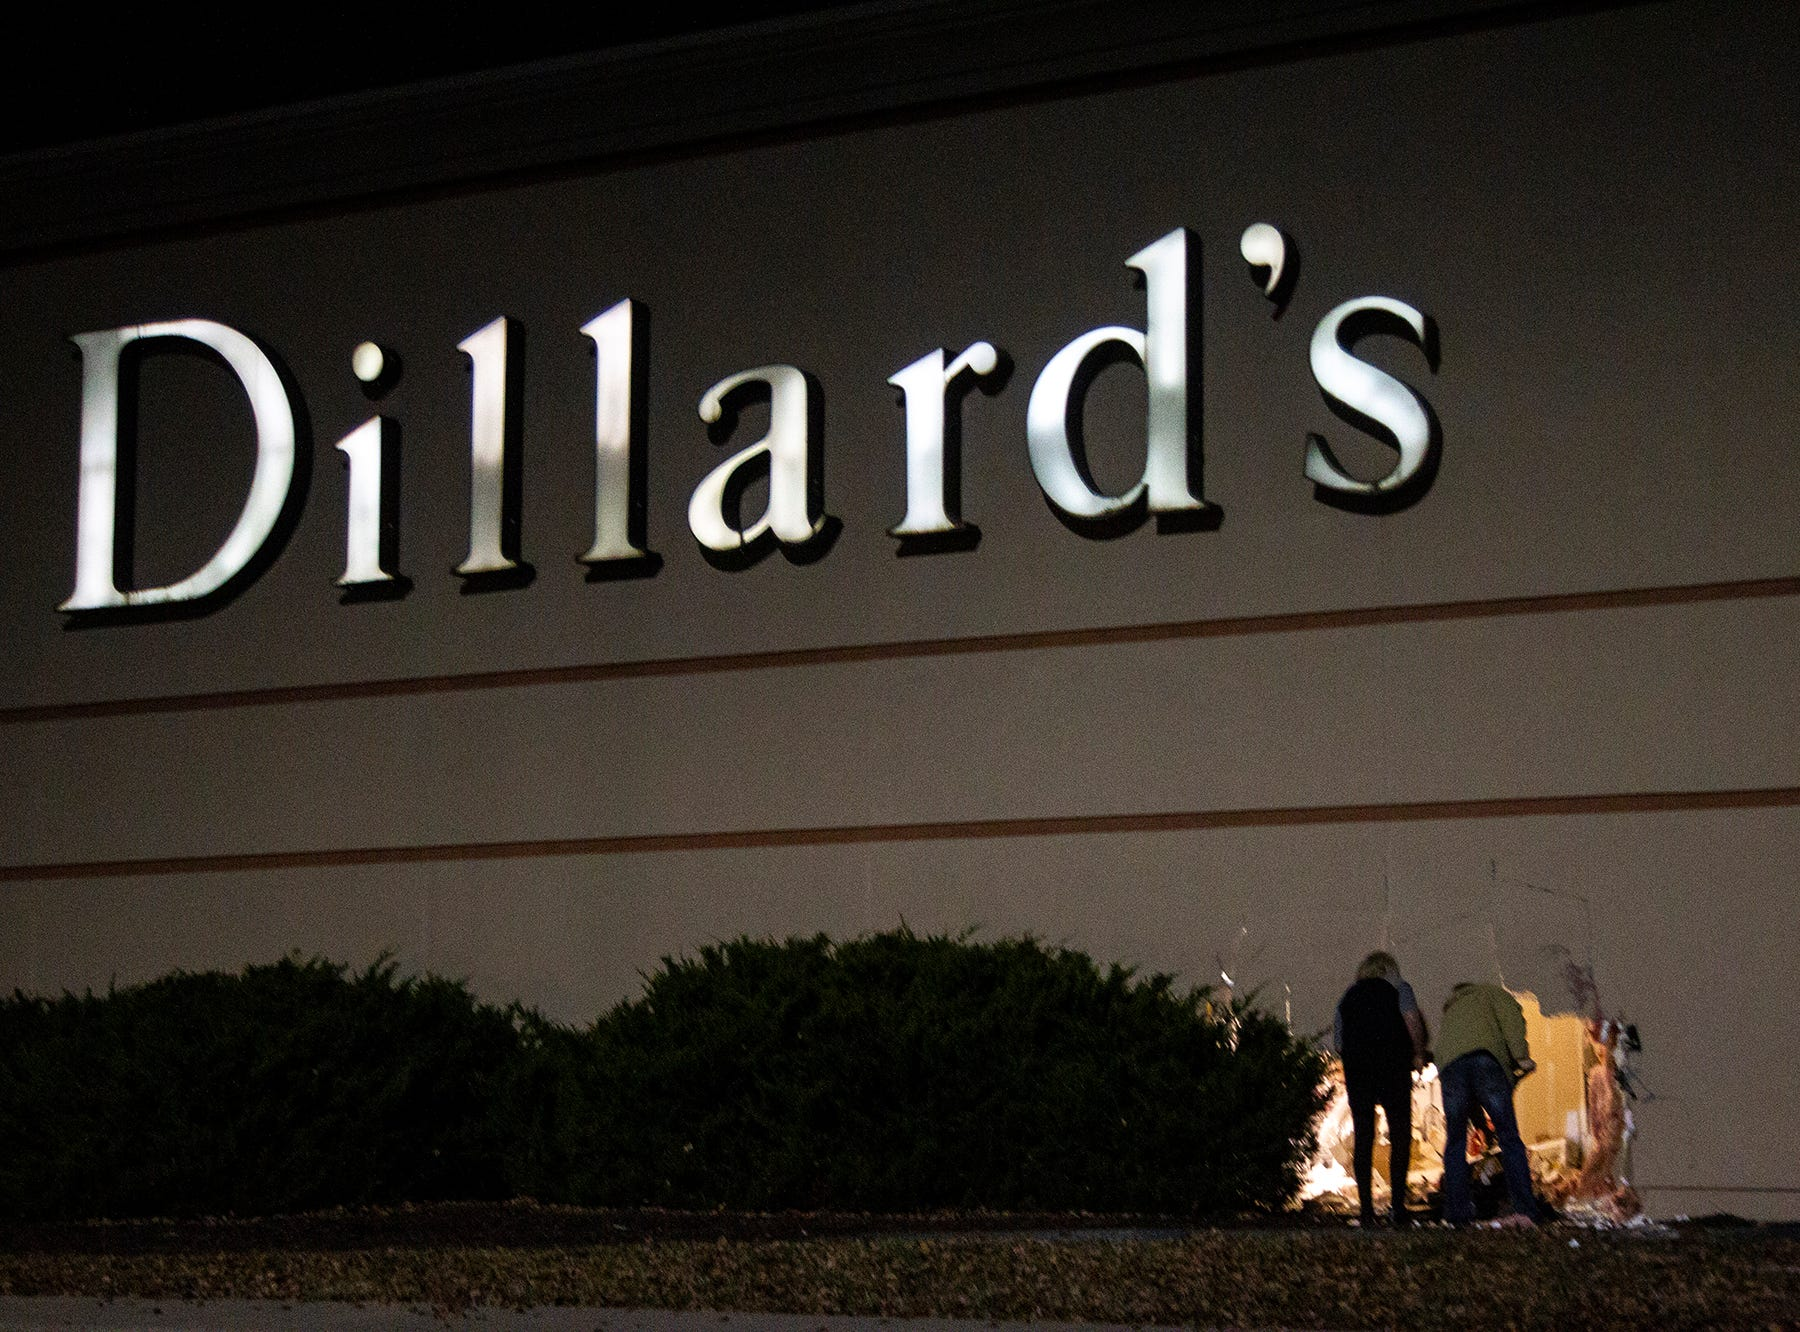 Mall security respond to a scene where a vehicle drove into the side of the building on Saturday, Dec. 22, 2018, outside Dillard's department store at the Coral Ridge Mall in Coralville.